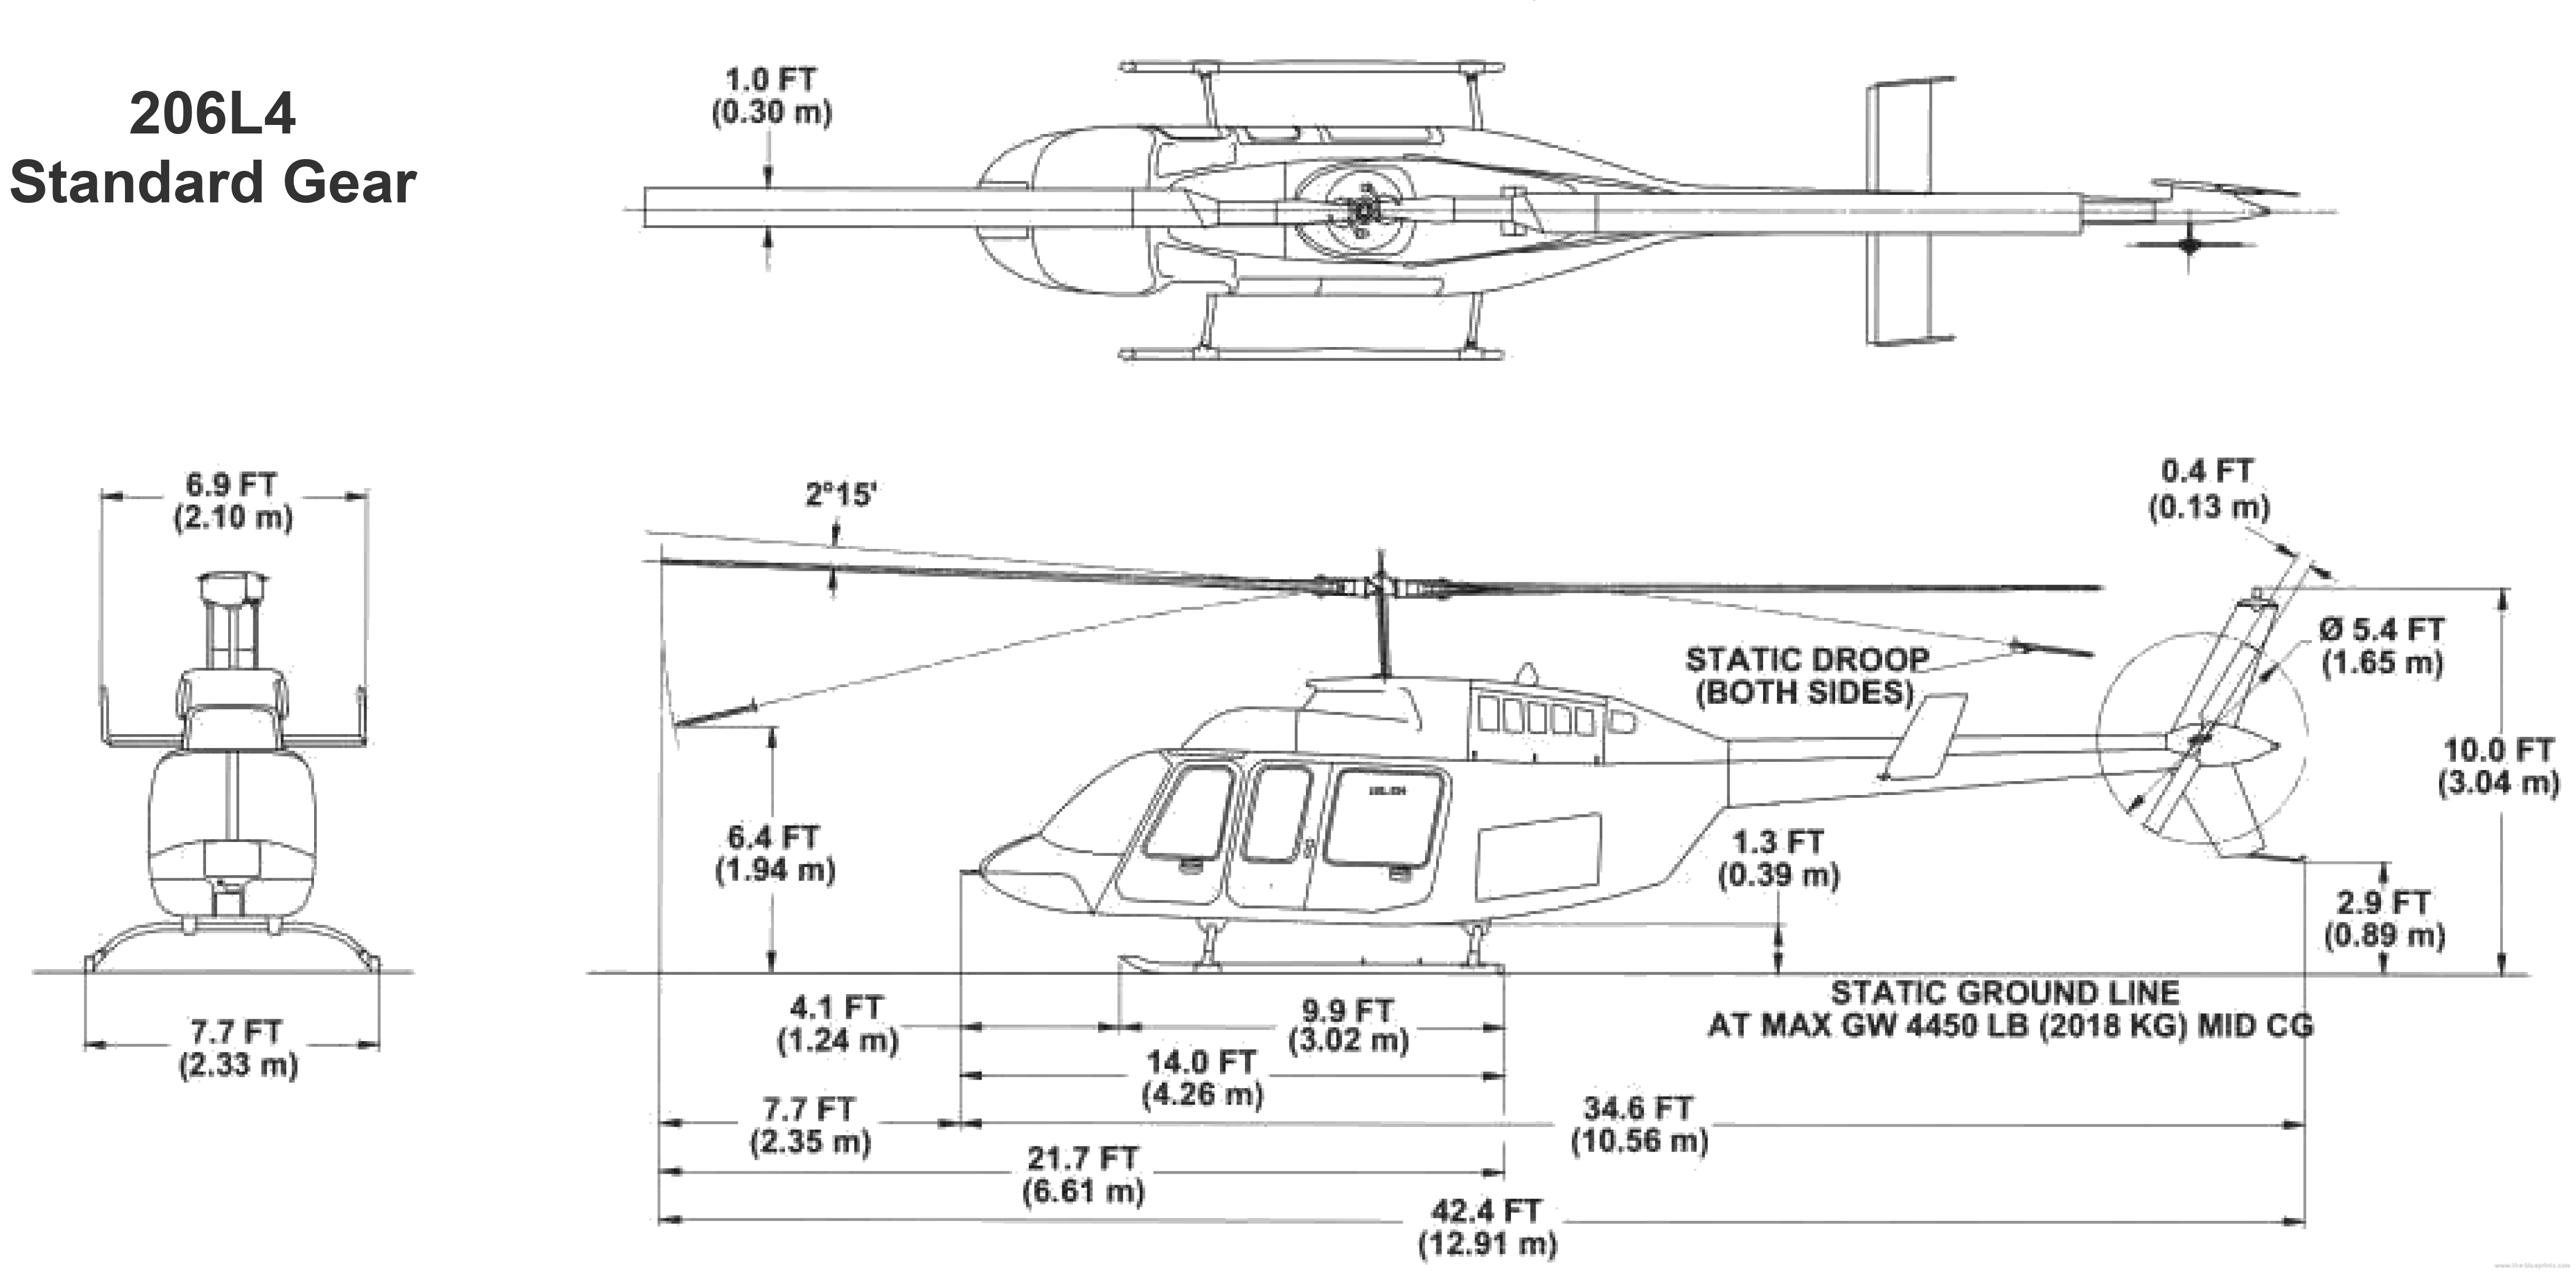 bell helicopter blueprint with Bell 206l4 Longranger Iv Standard Gear on Oblivion Bubbleship additionally Bell ah 1w super cobra furthermore Imagenes Cutaway PARTE1 as well 4 together with Cutaway Ah 1z Viper Enters Production As Substantially New Aircraft.